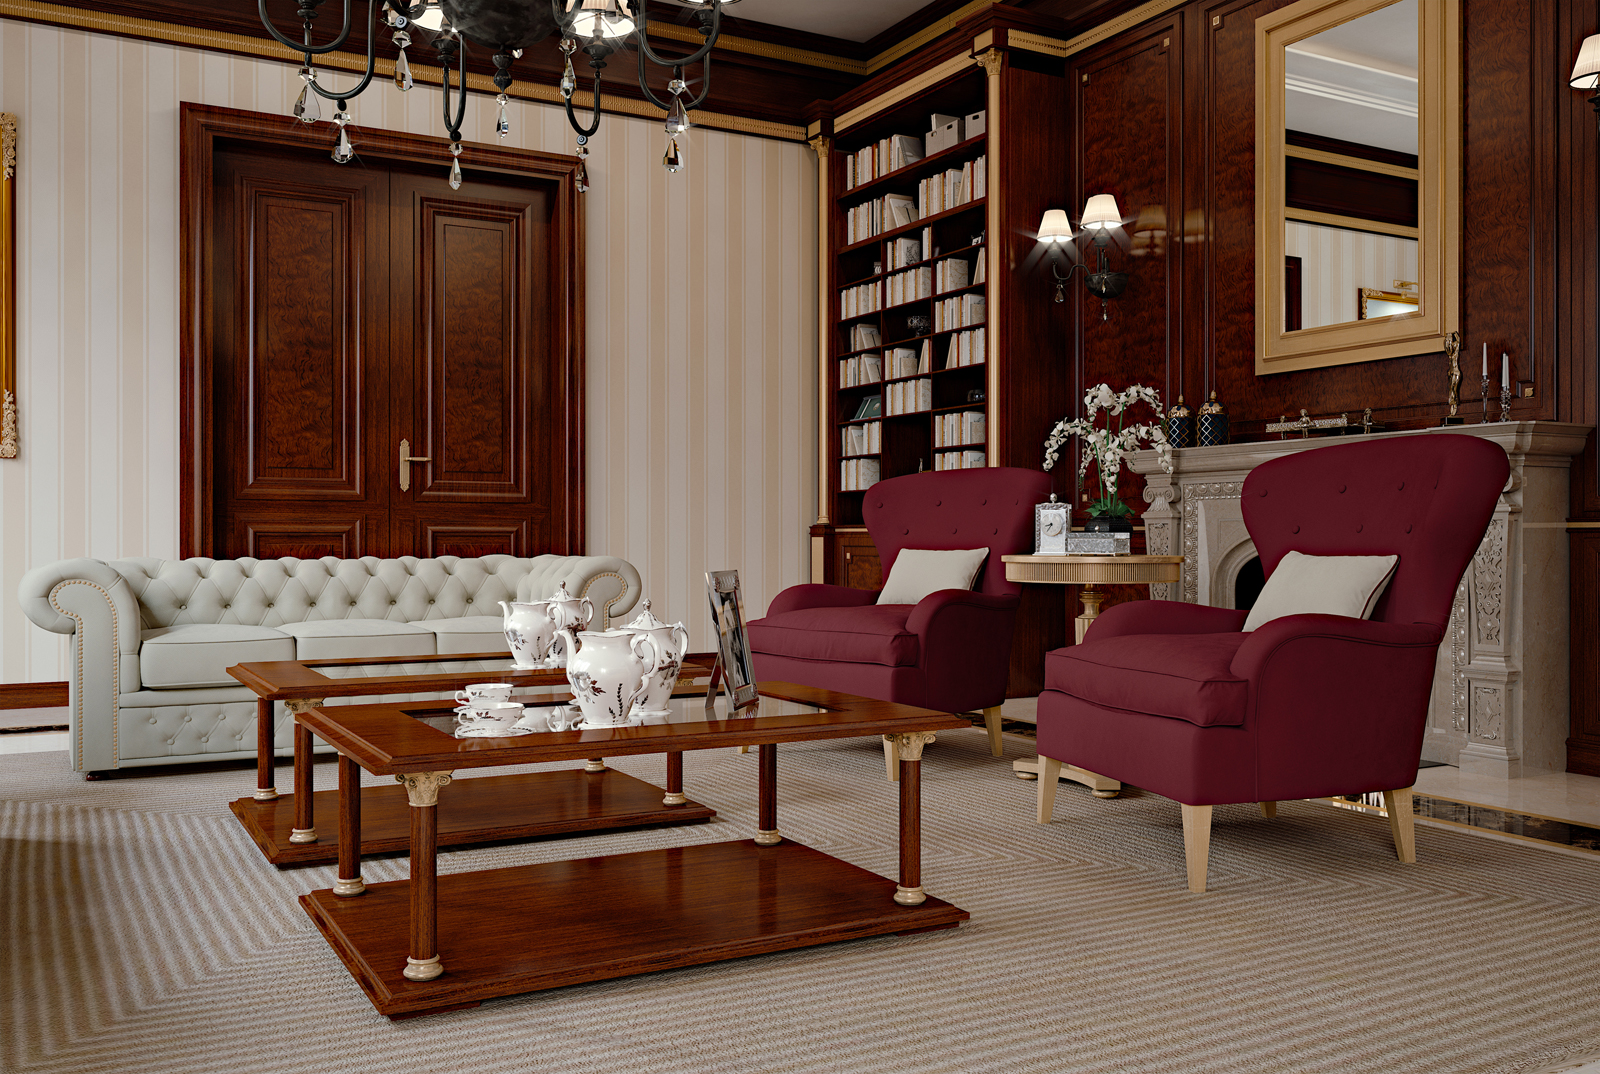 Rome a classic private office elledue arredamenti - Office tourisme italien a paris ...